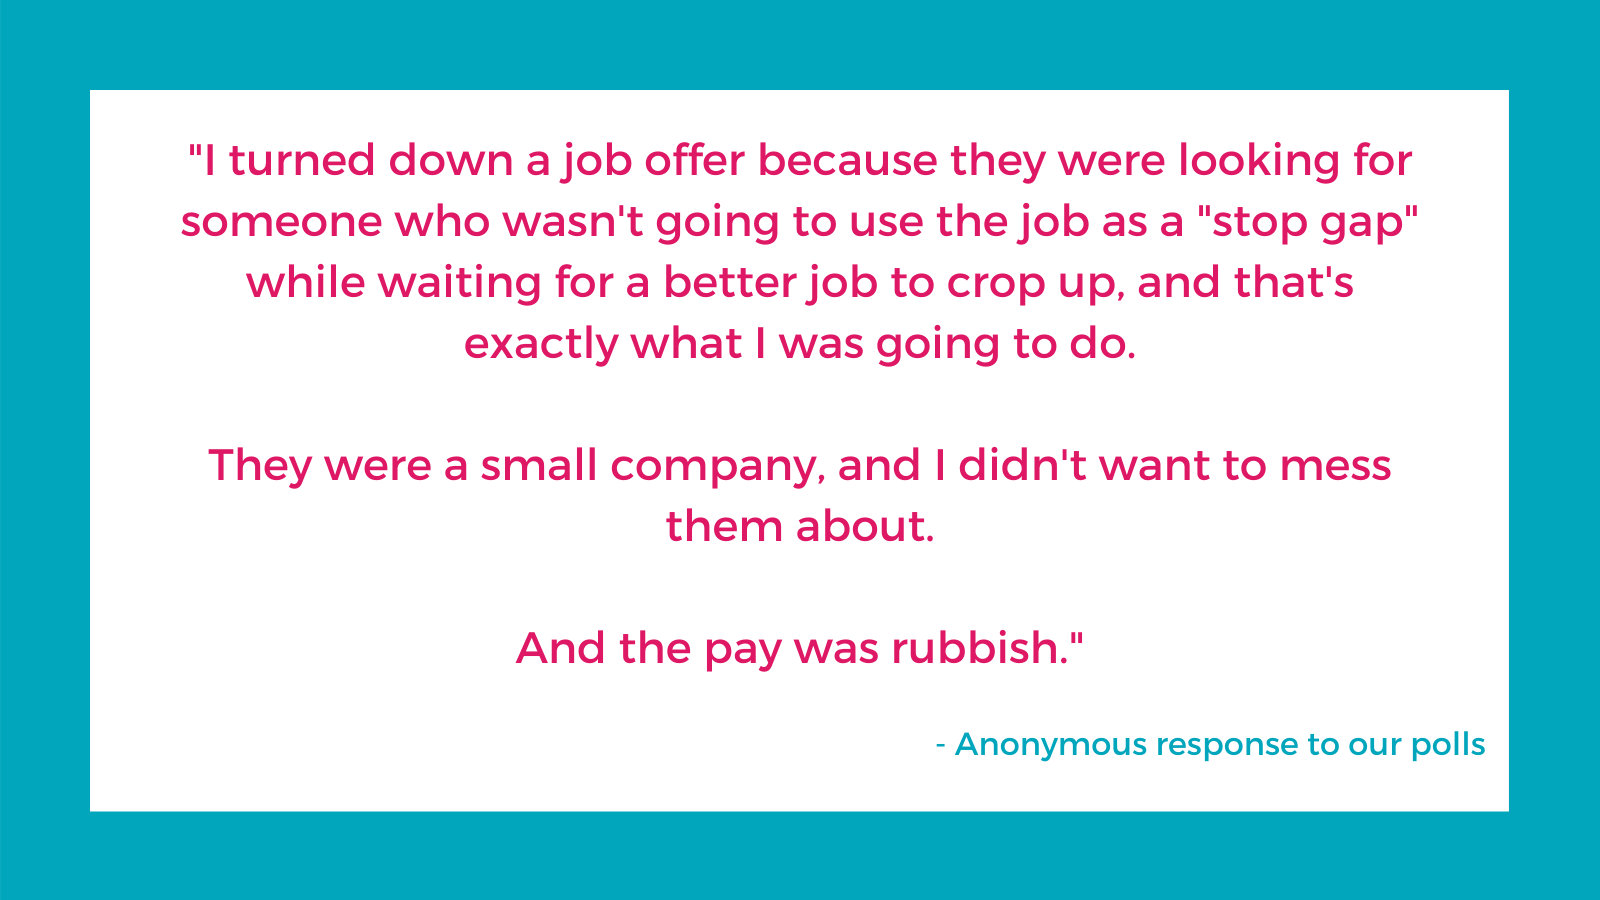 An honest answer why someone turned down a job offer